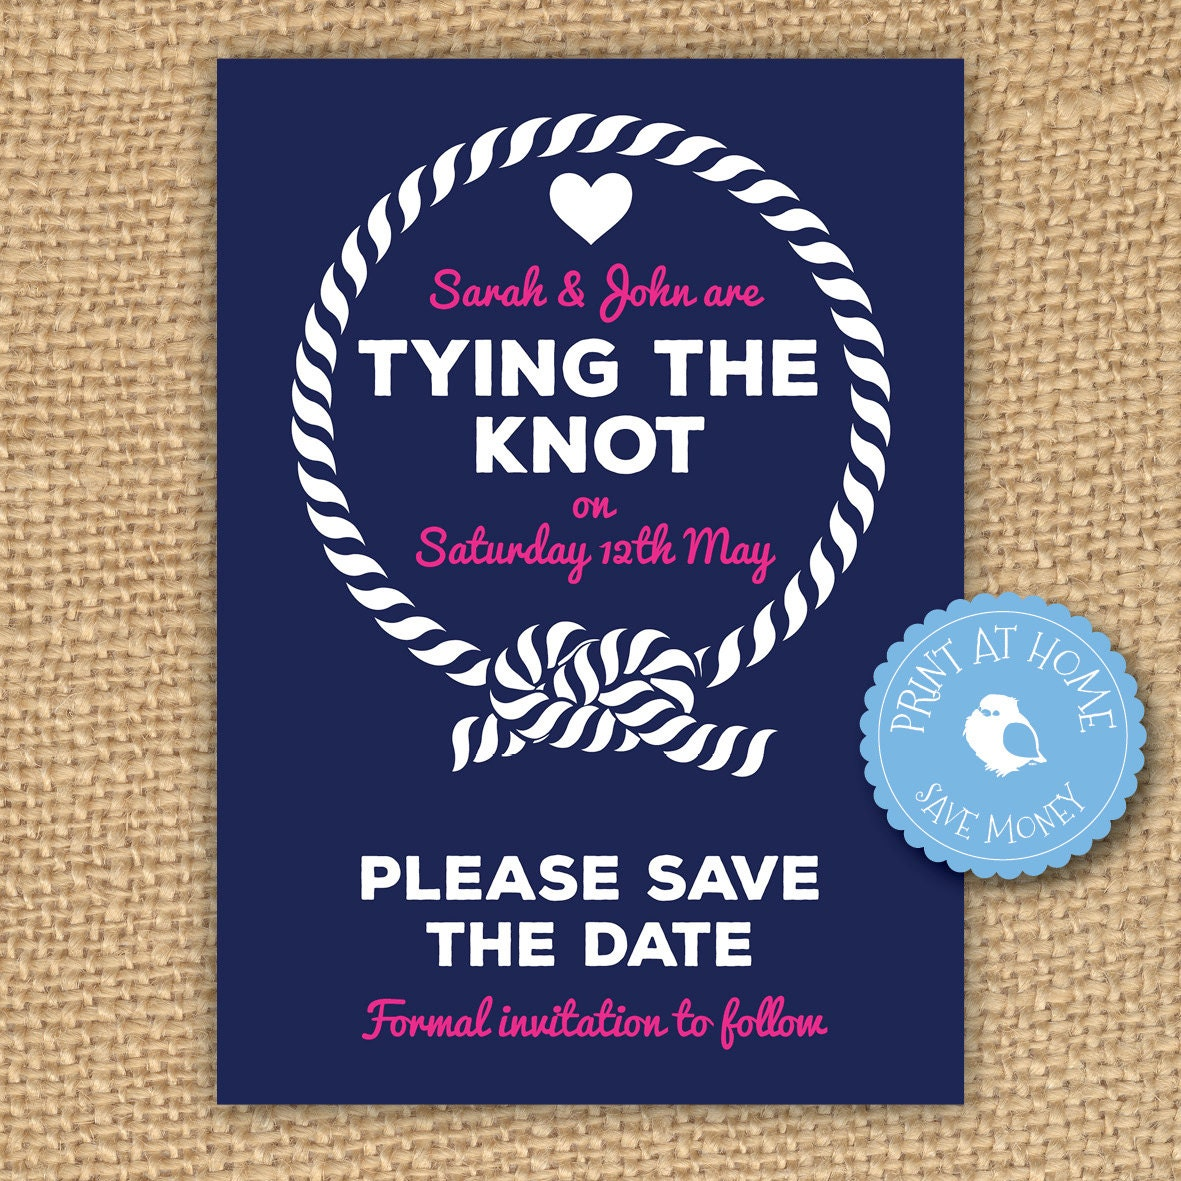 save the date wedding invitation tying the knot tie the